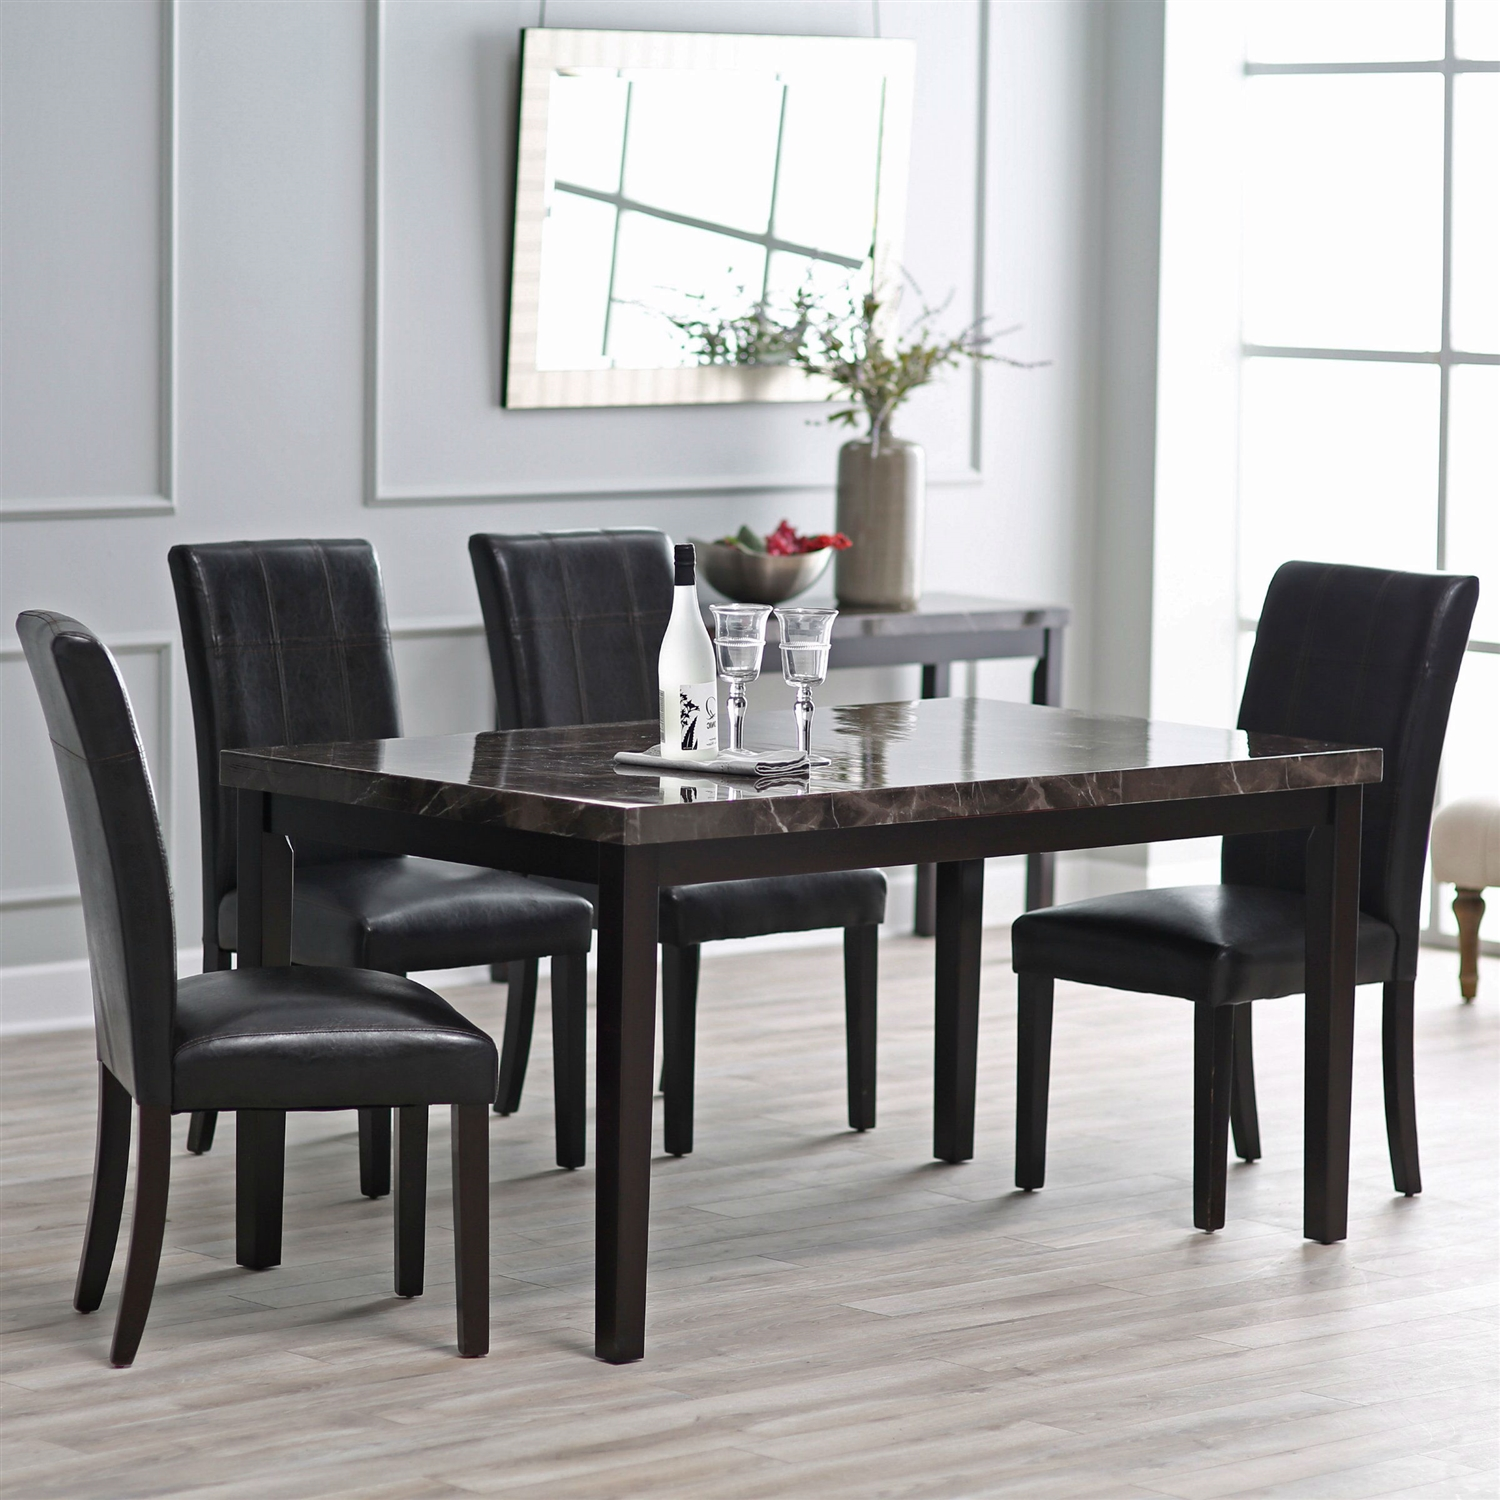 Contemporary 60 X 36 Inch Dining Table With Faux Marble Top Fastfurnishings Com